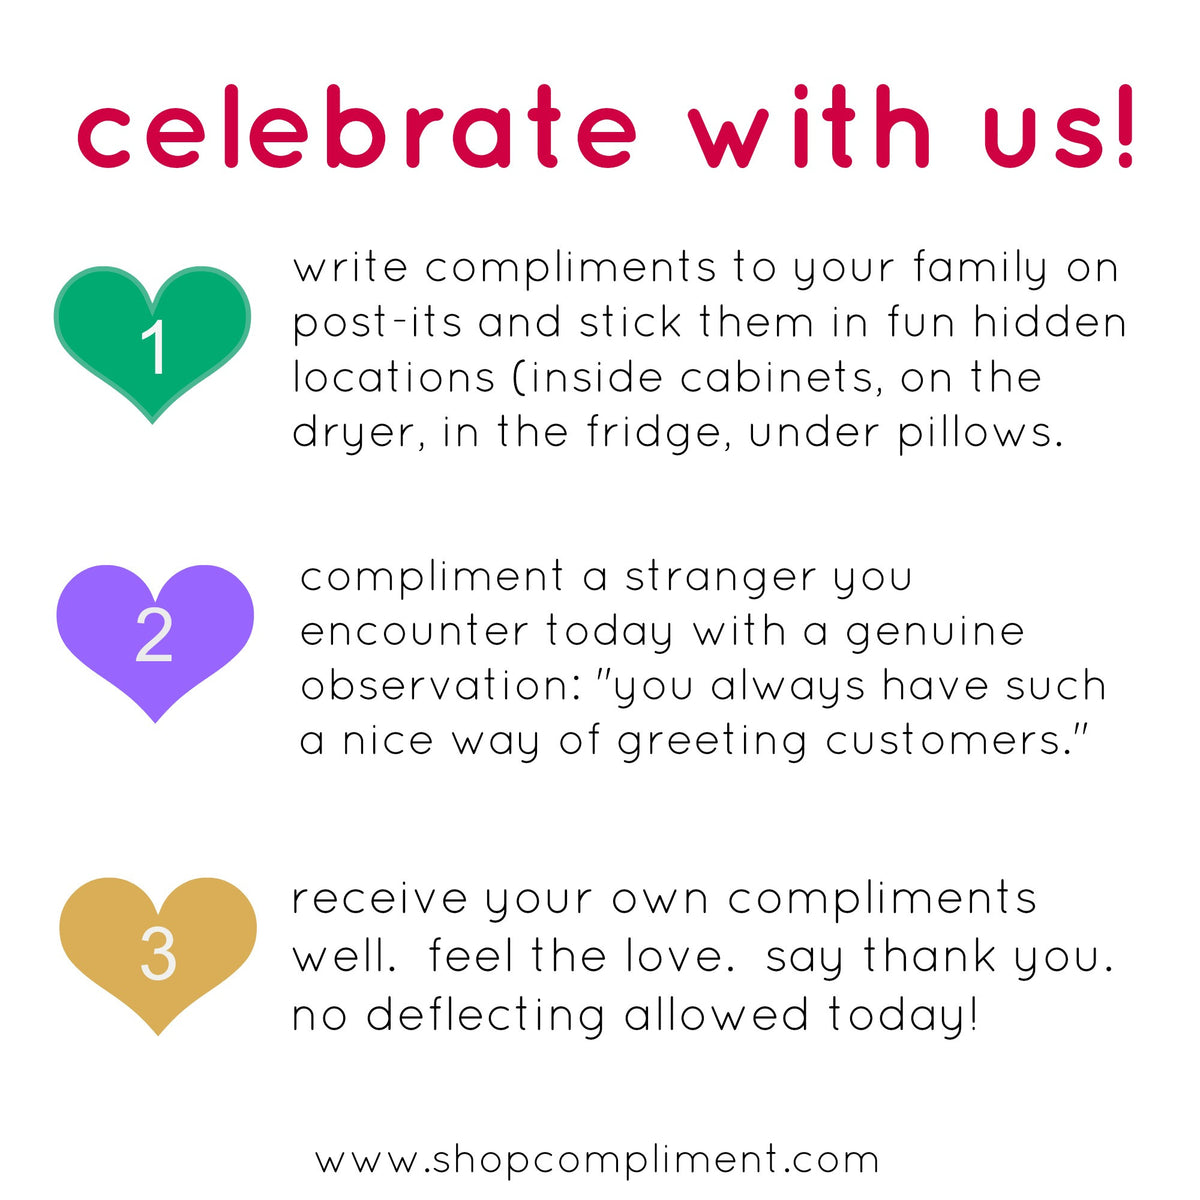 happy world compliment day!